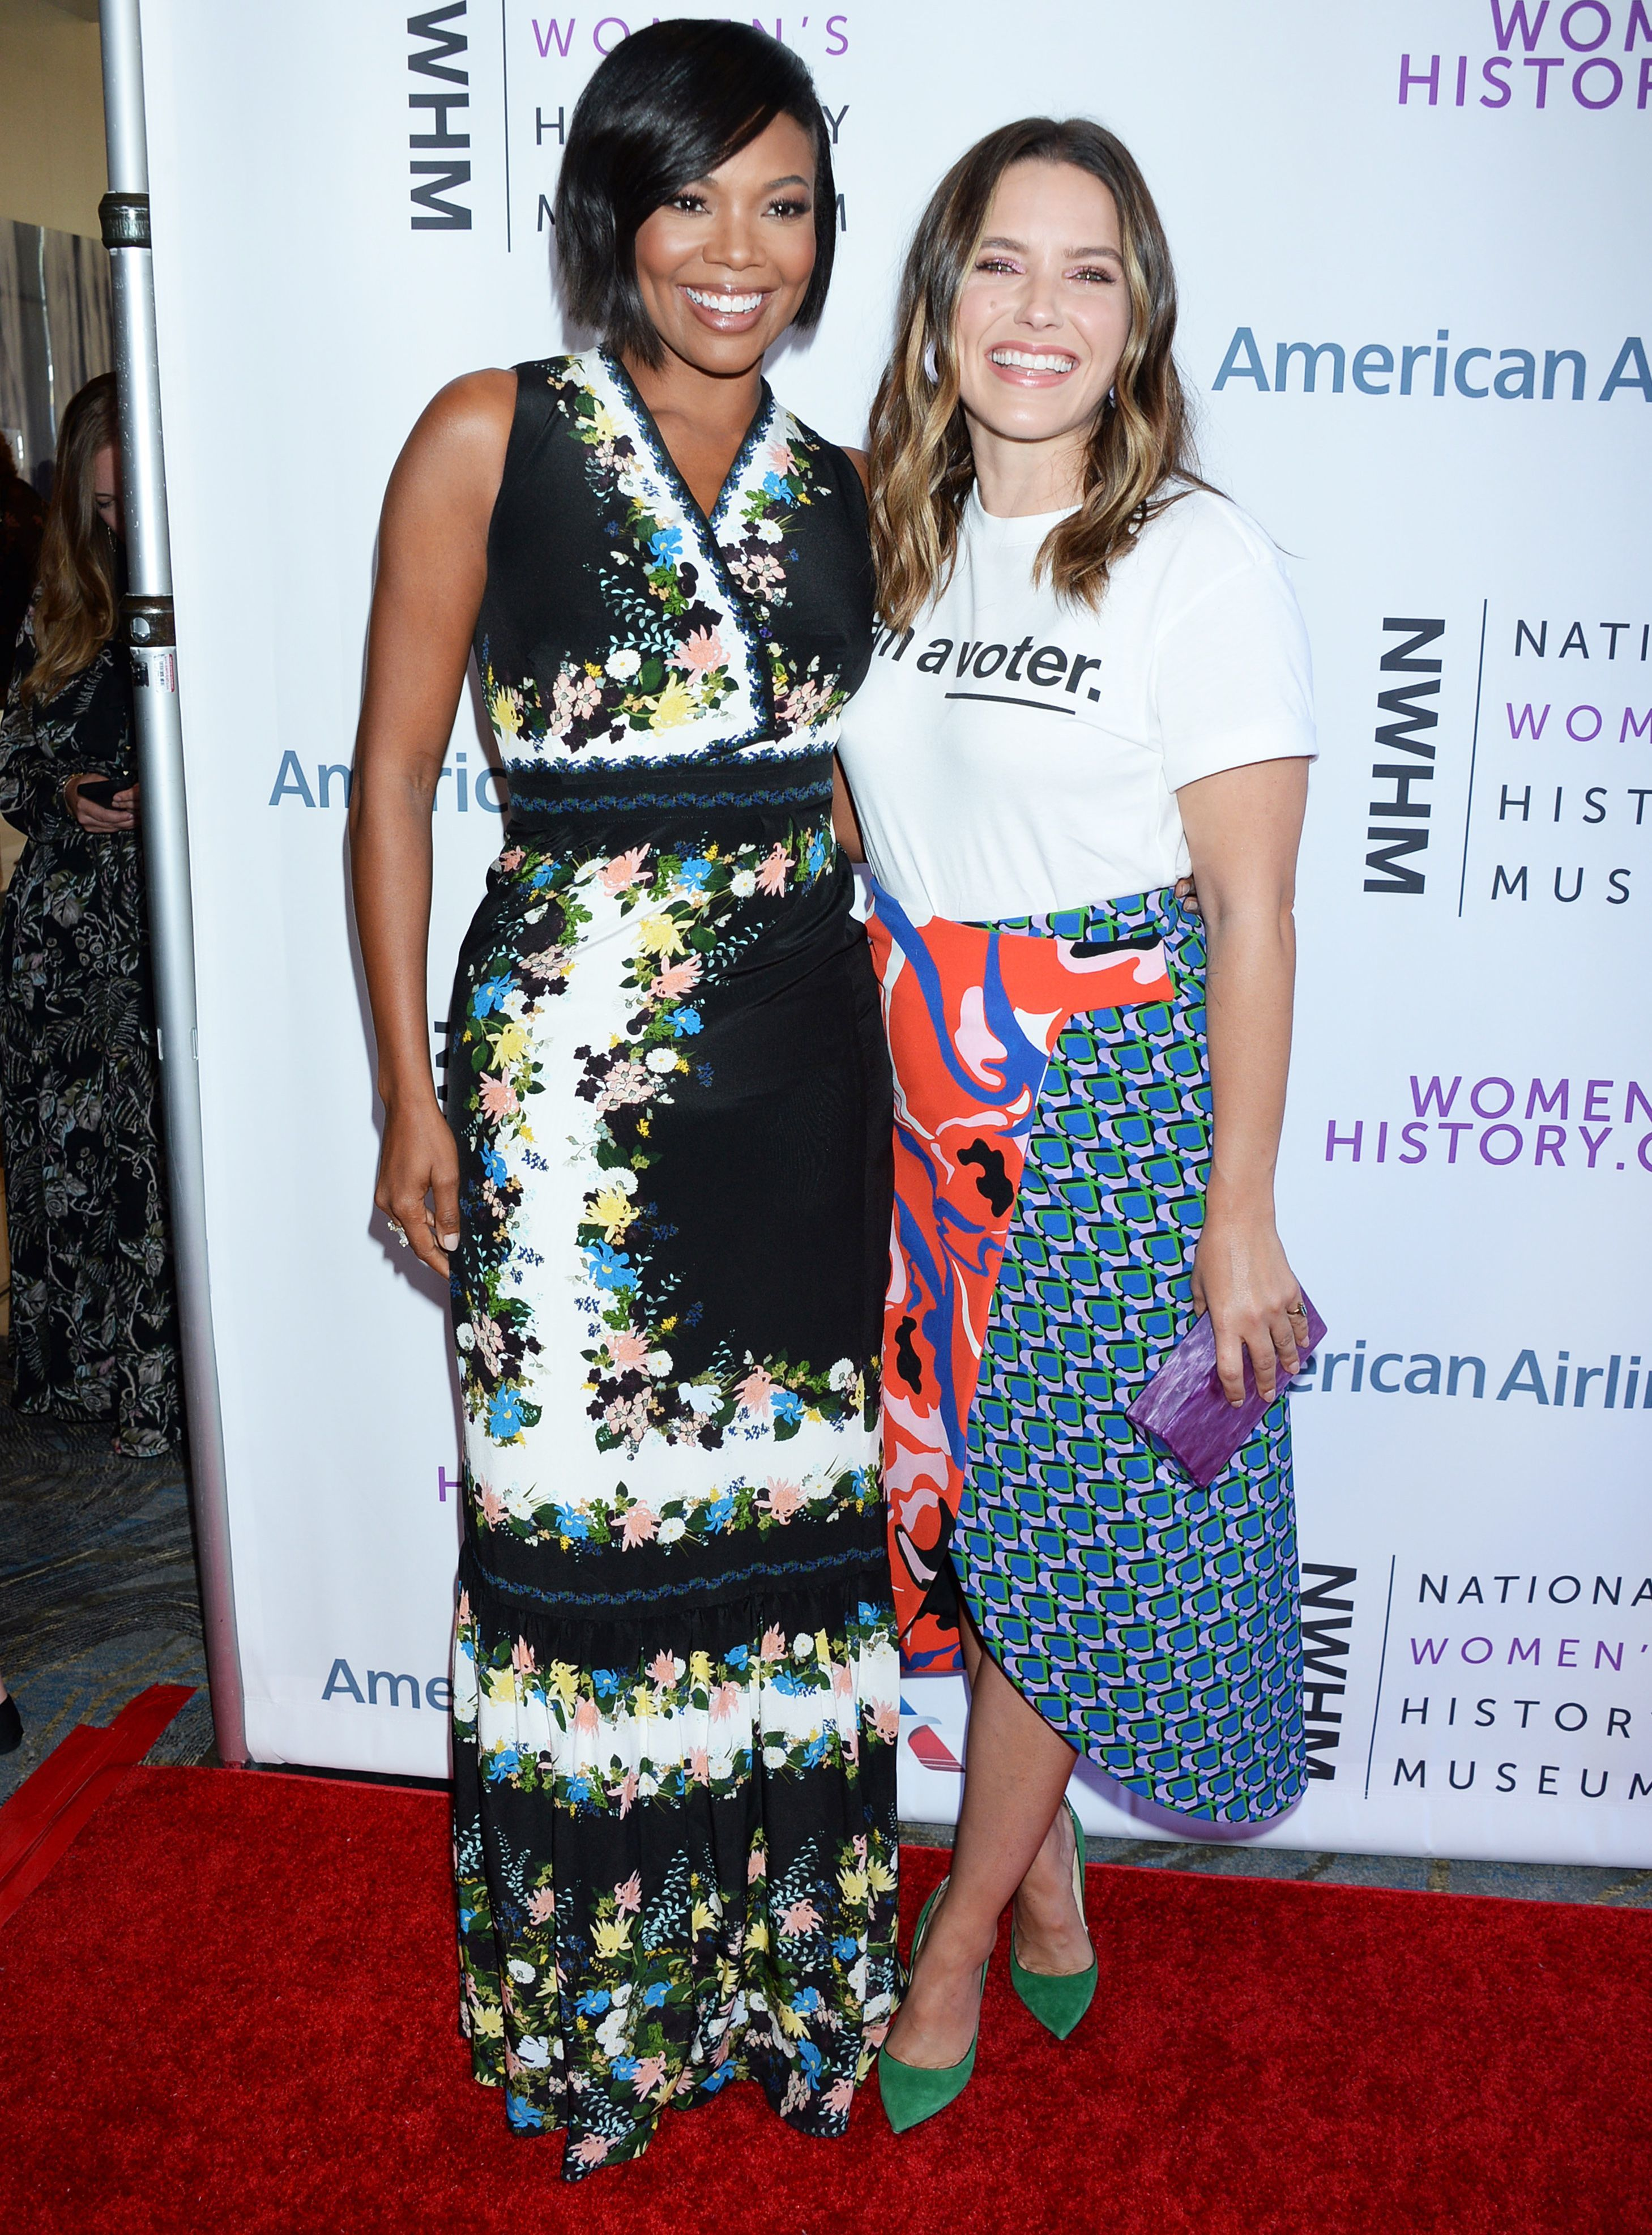 Gabrielle Union and Sophia Bush attend the National Women's History Museum Women Making History Awards in Los Angeles on Sept. 15, 2018.